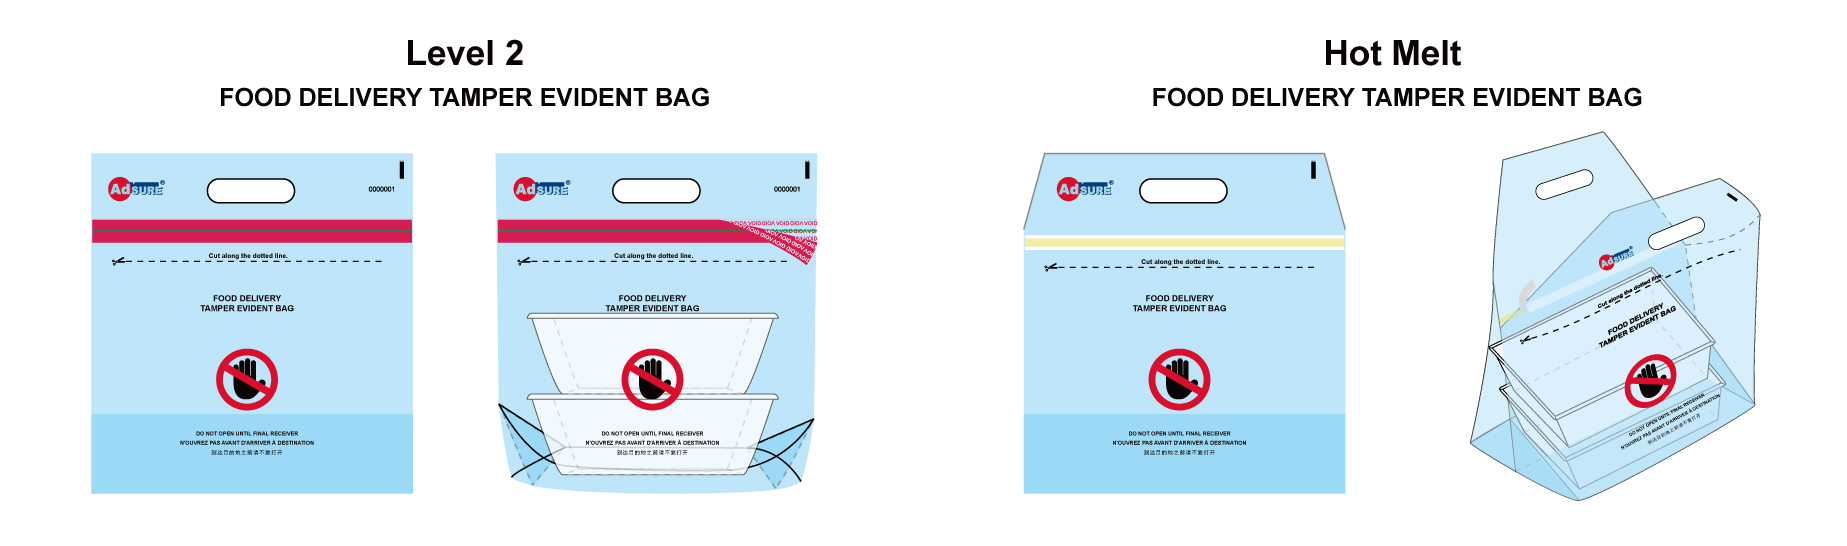 Tamper Evident Bags for Food Delivery and Restaurant